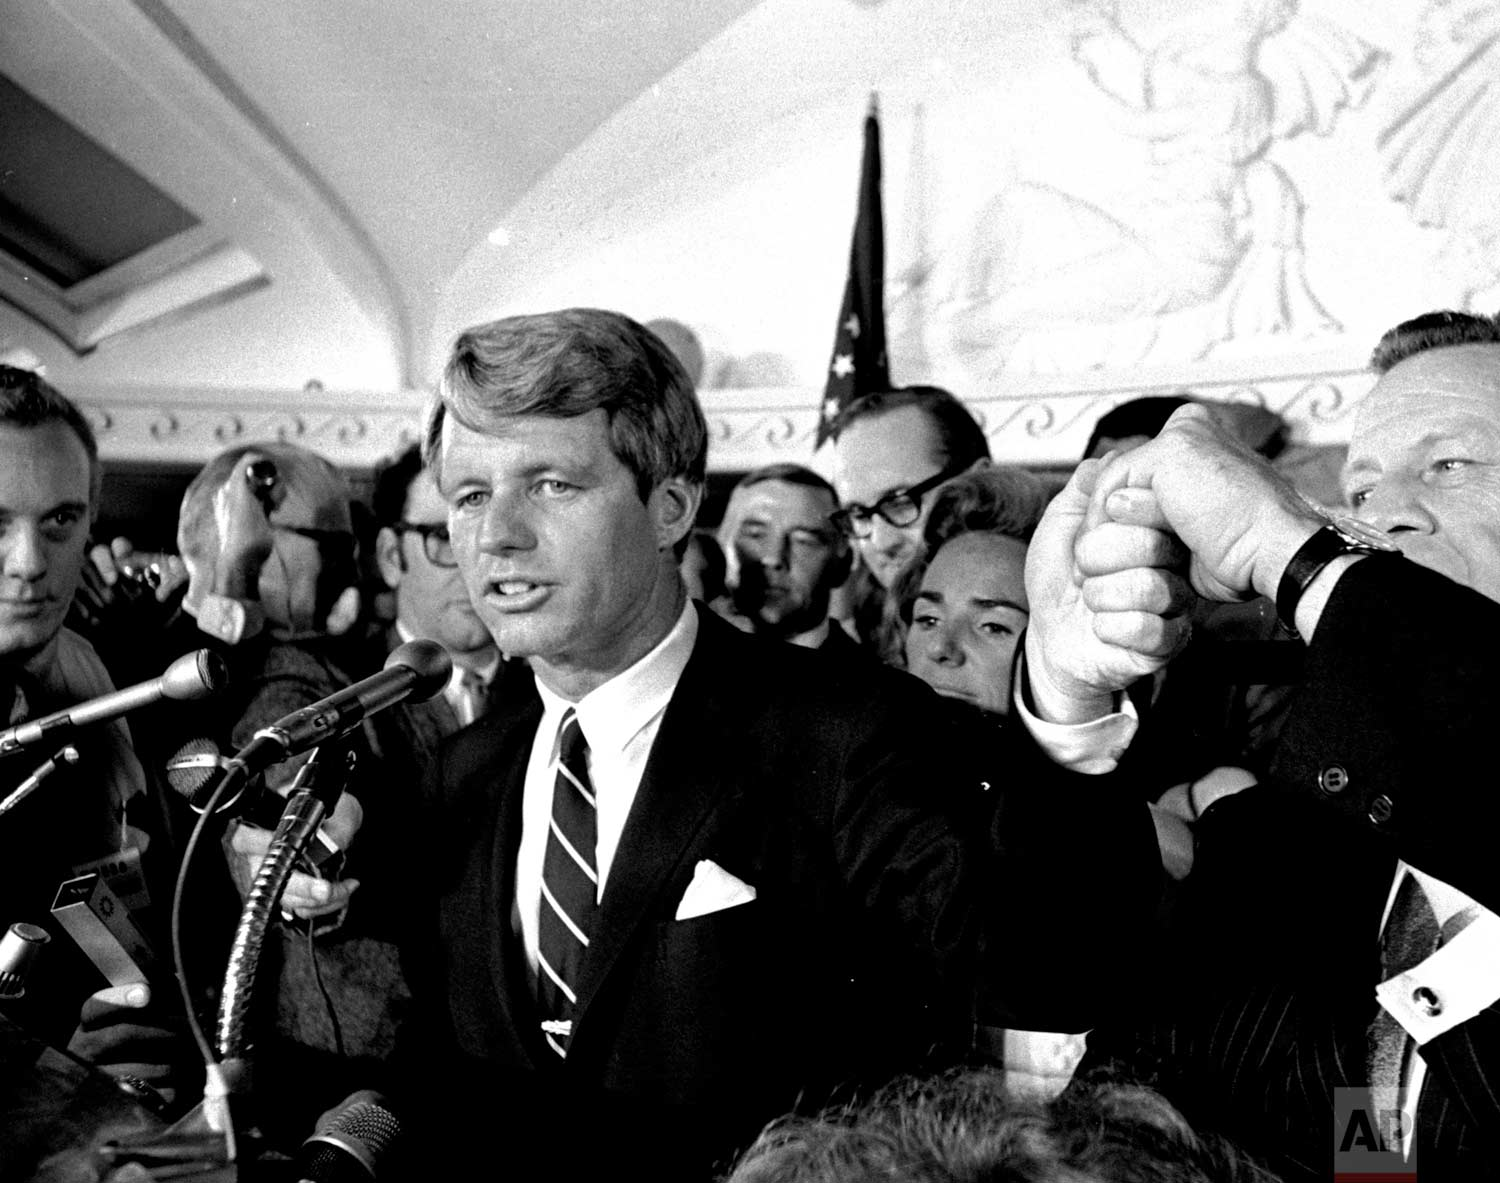 This June 5, 1968 photo shows Sen. Robert F. Kennedy speaking at the Ambassador Hotel in Los Angeles, following his victory in the previous day's California primary election. The New York senator was shot just after jubilantly proclaiming victory in California's Democratic presidential primary election. (AP Photo/Dick Strobel)